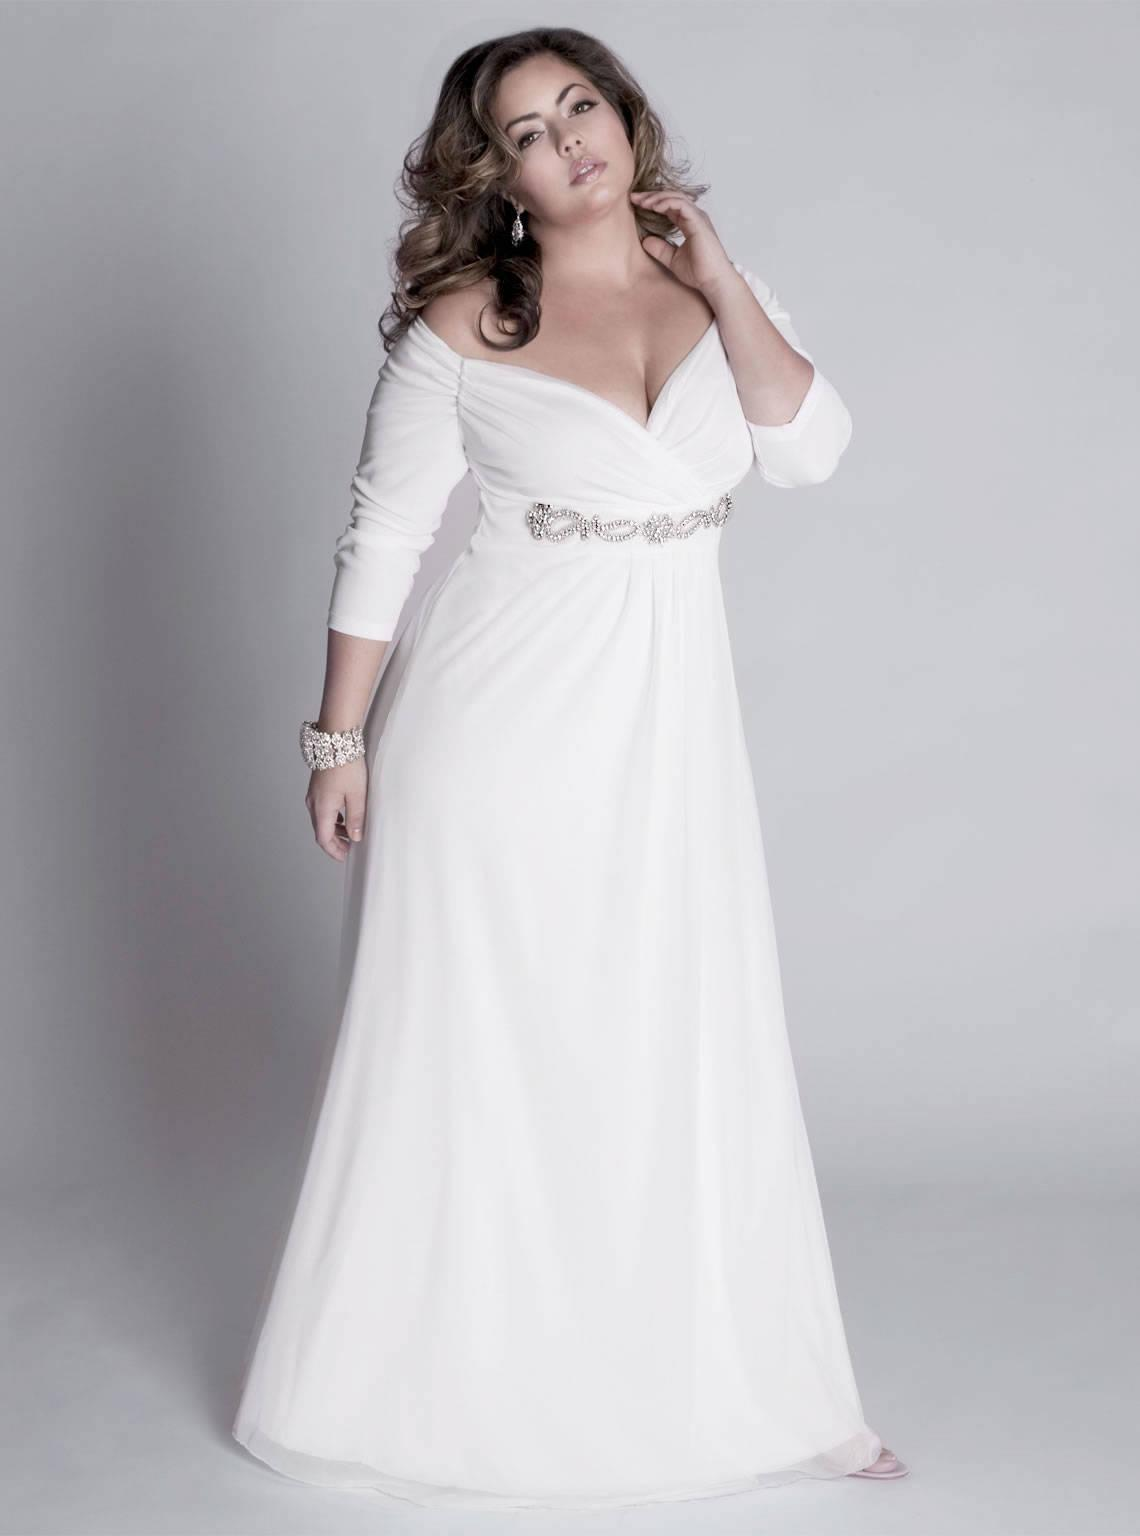 Plus Size White Gown Online Sale, UP TO 20 OFF